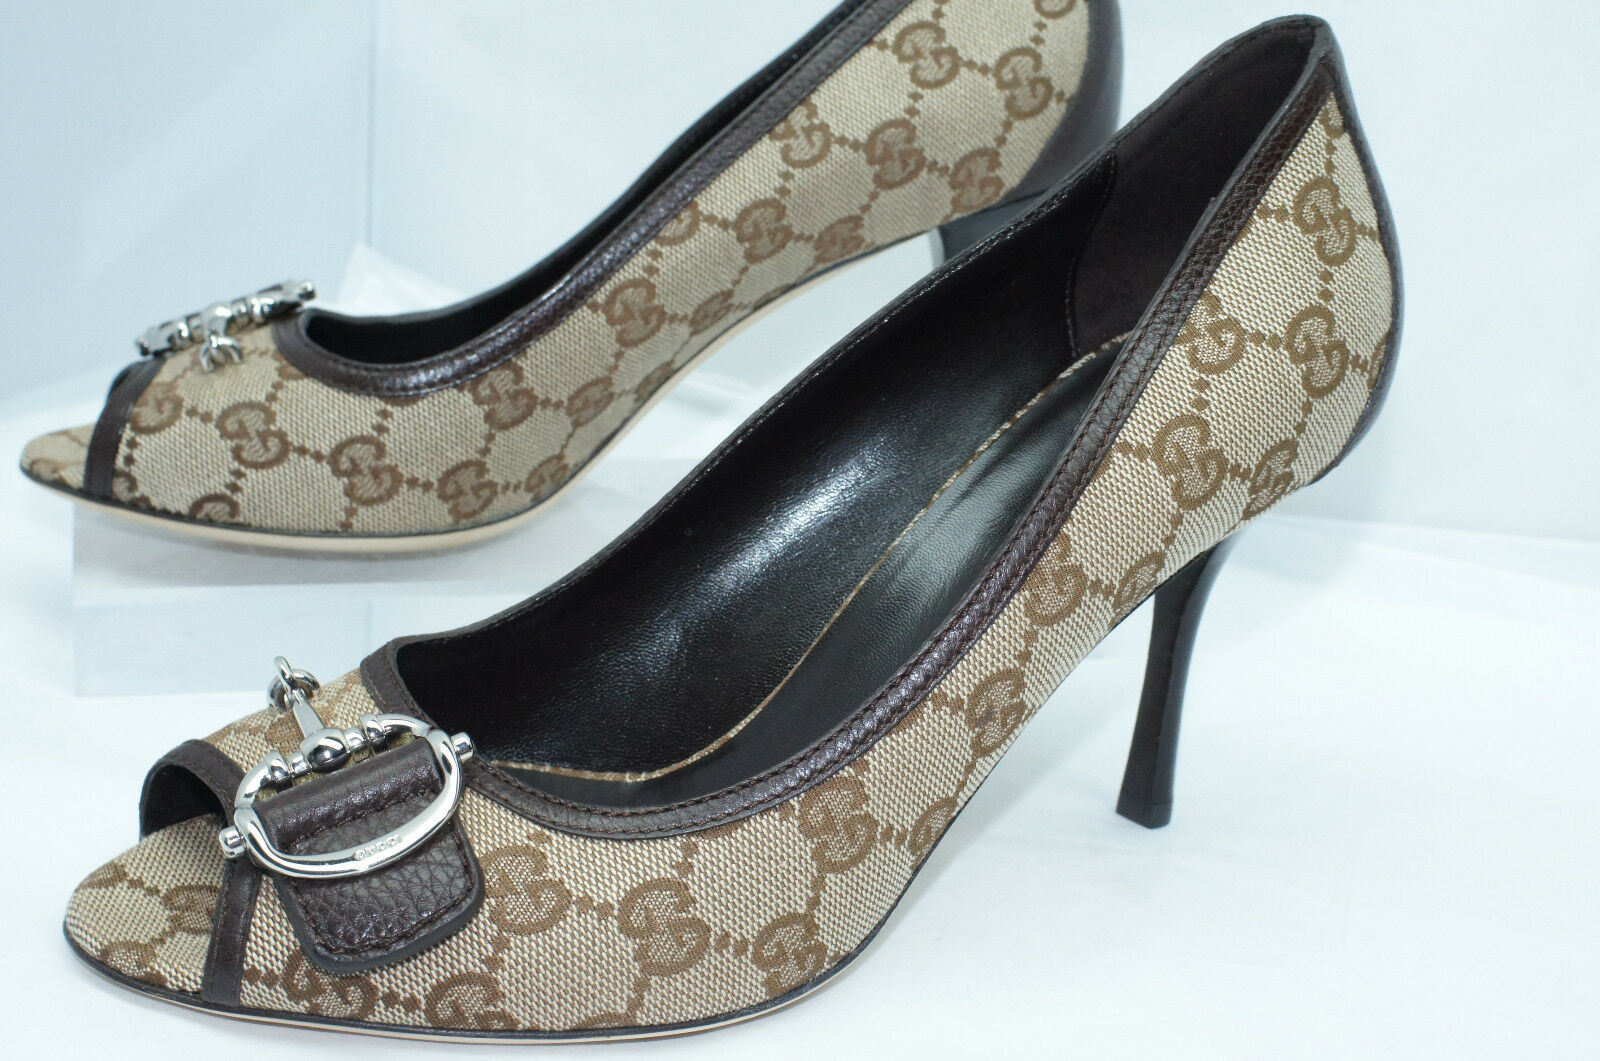 New Gucci Women's Shoes Pumps GG Logo Size G 39.5 Original Heels Classics 1